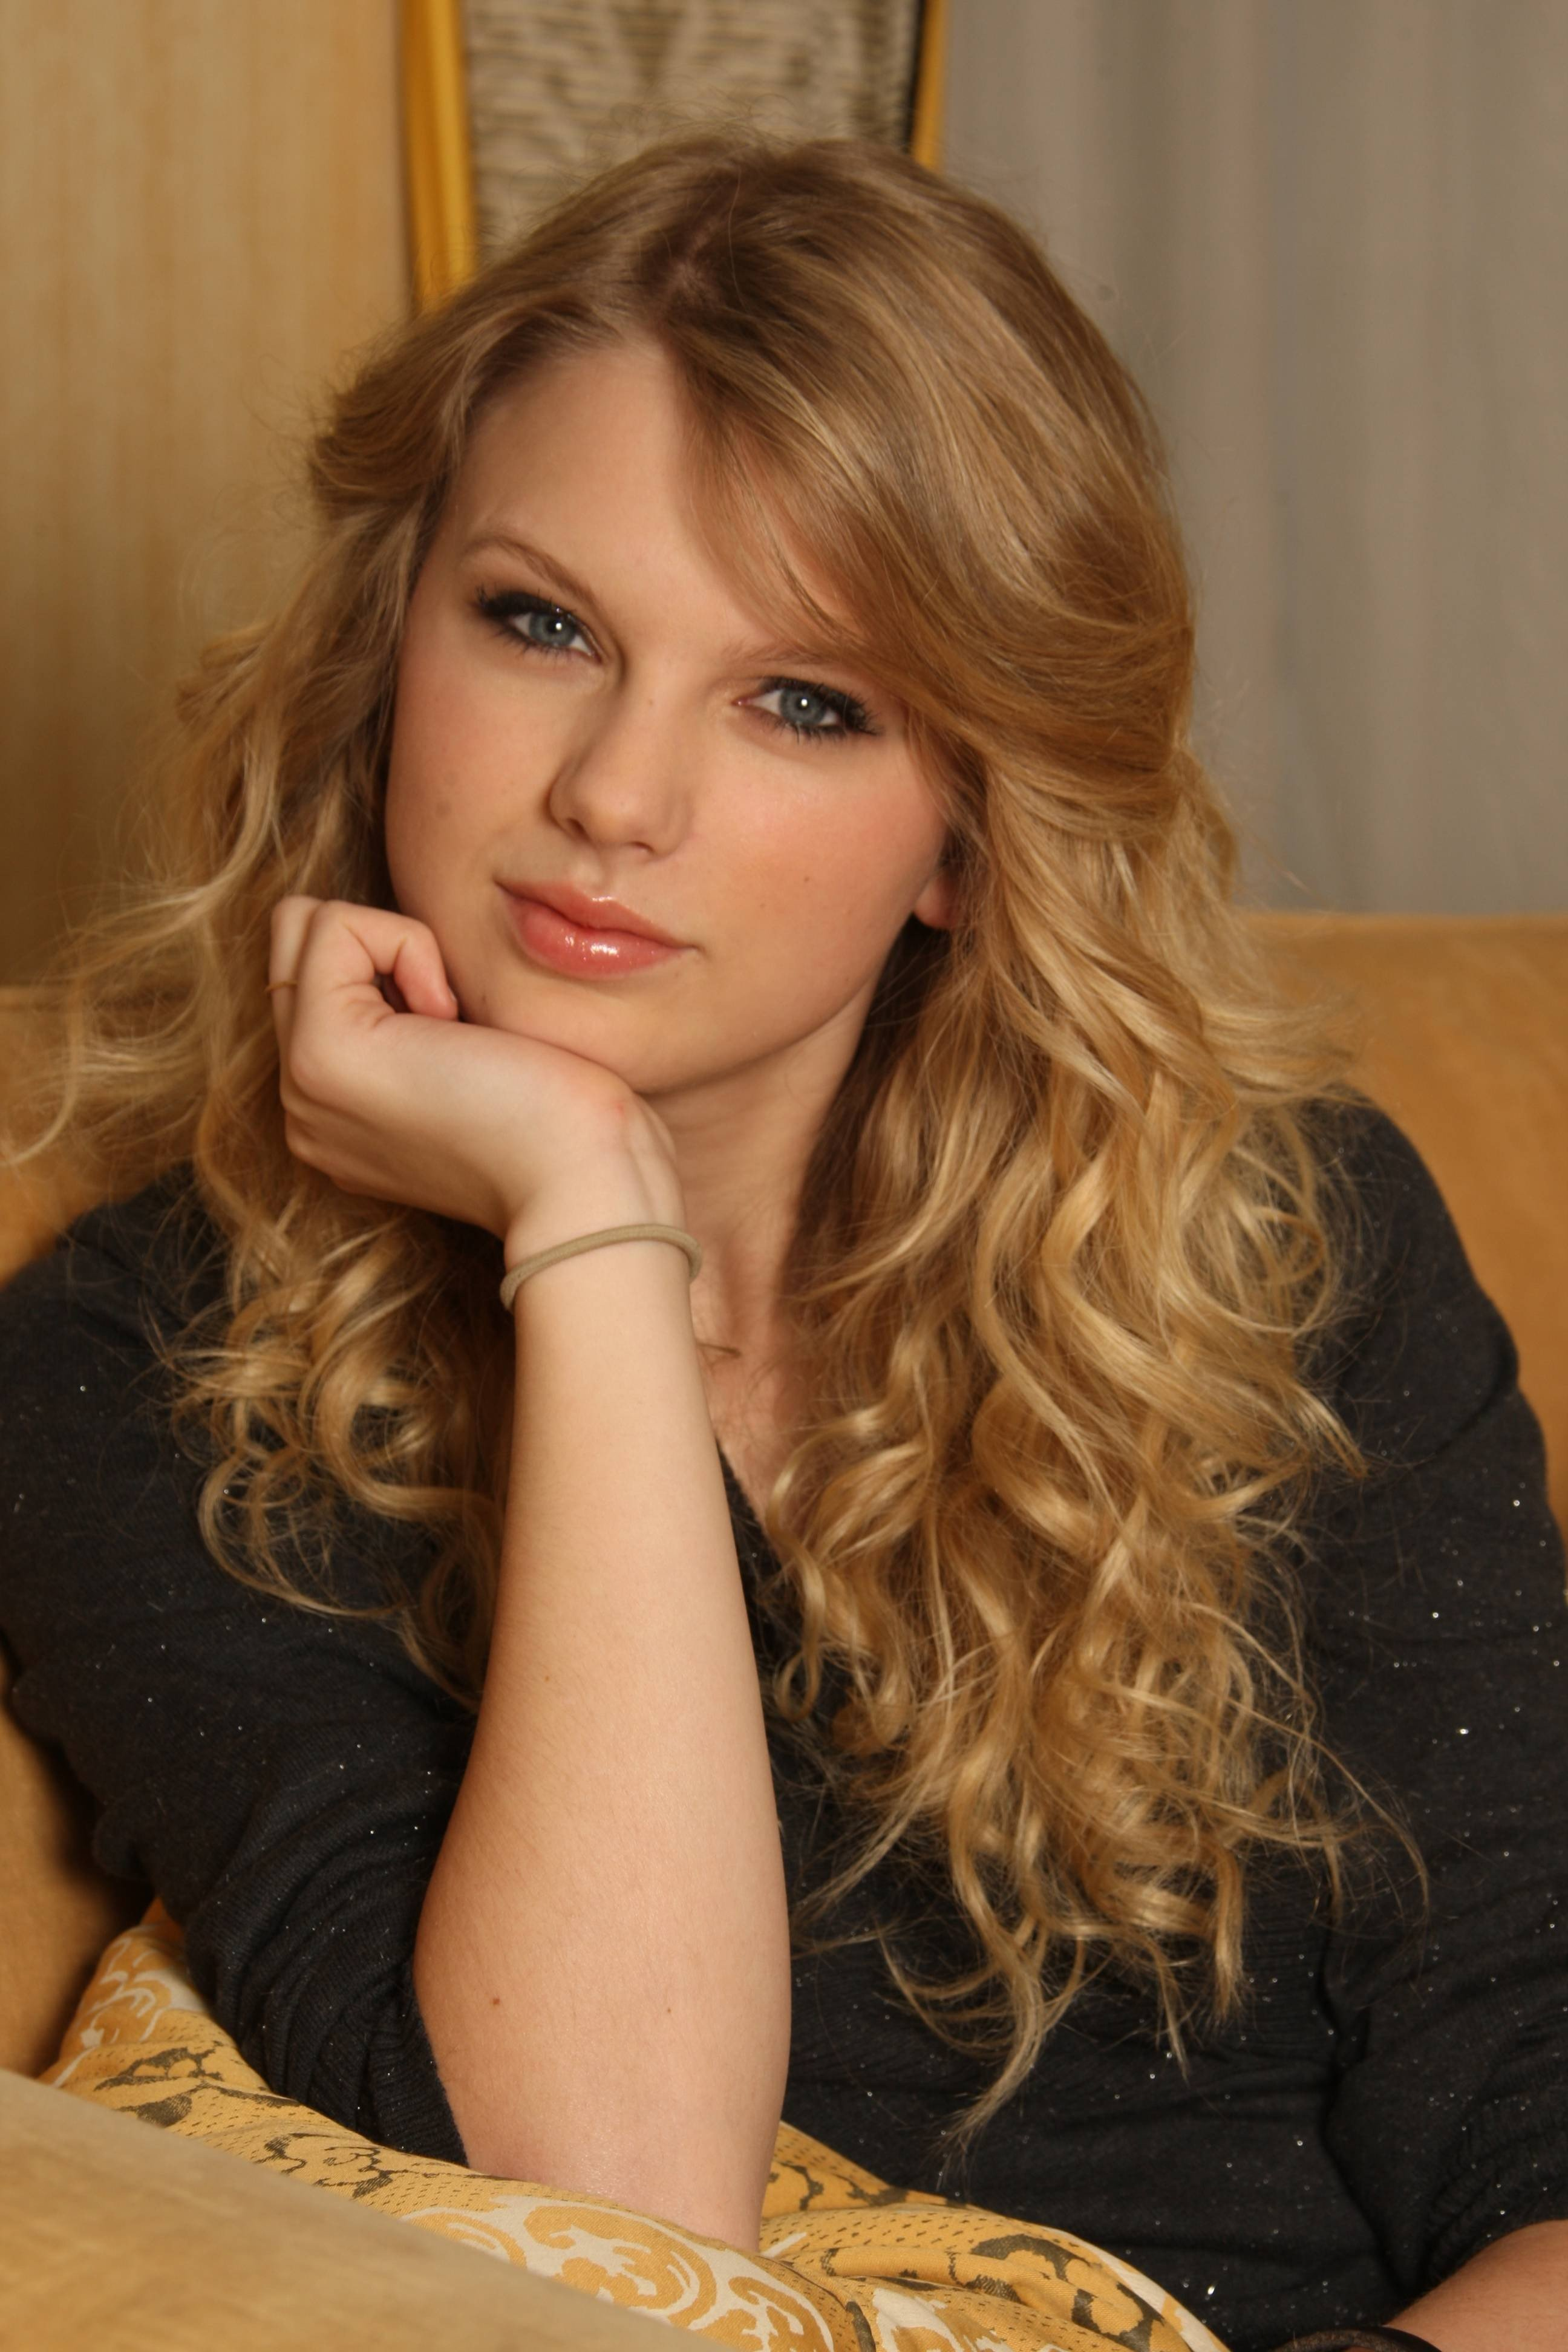 Taylor Swift Women Blonde Curly Hair Blue Eyes Hd Wallpapers Desktop And Mobile Images Photos